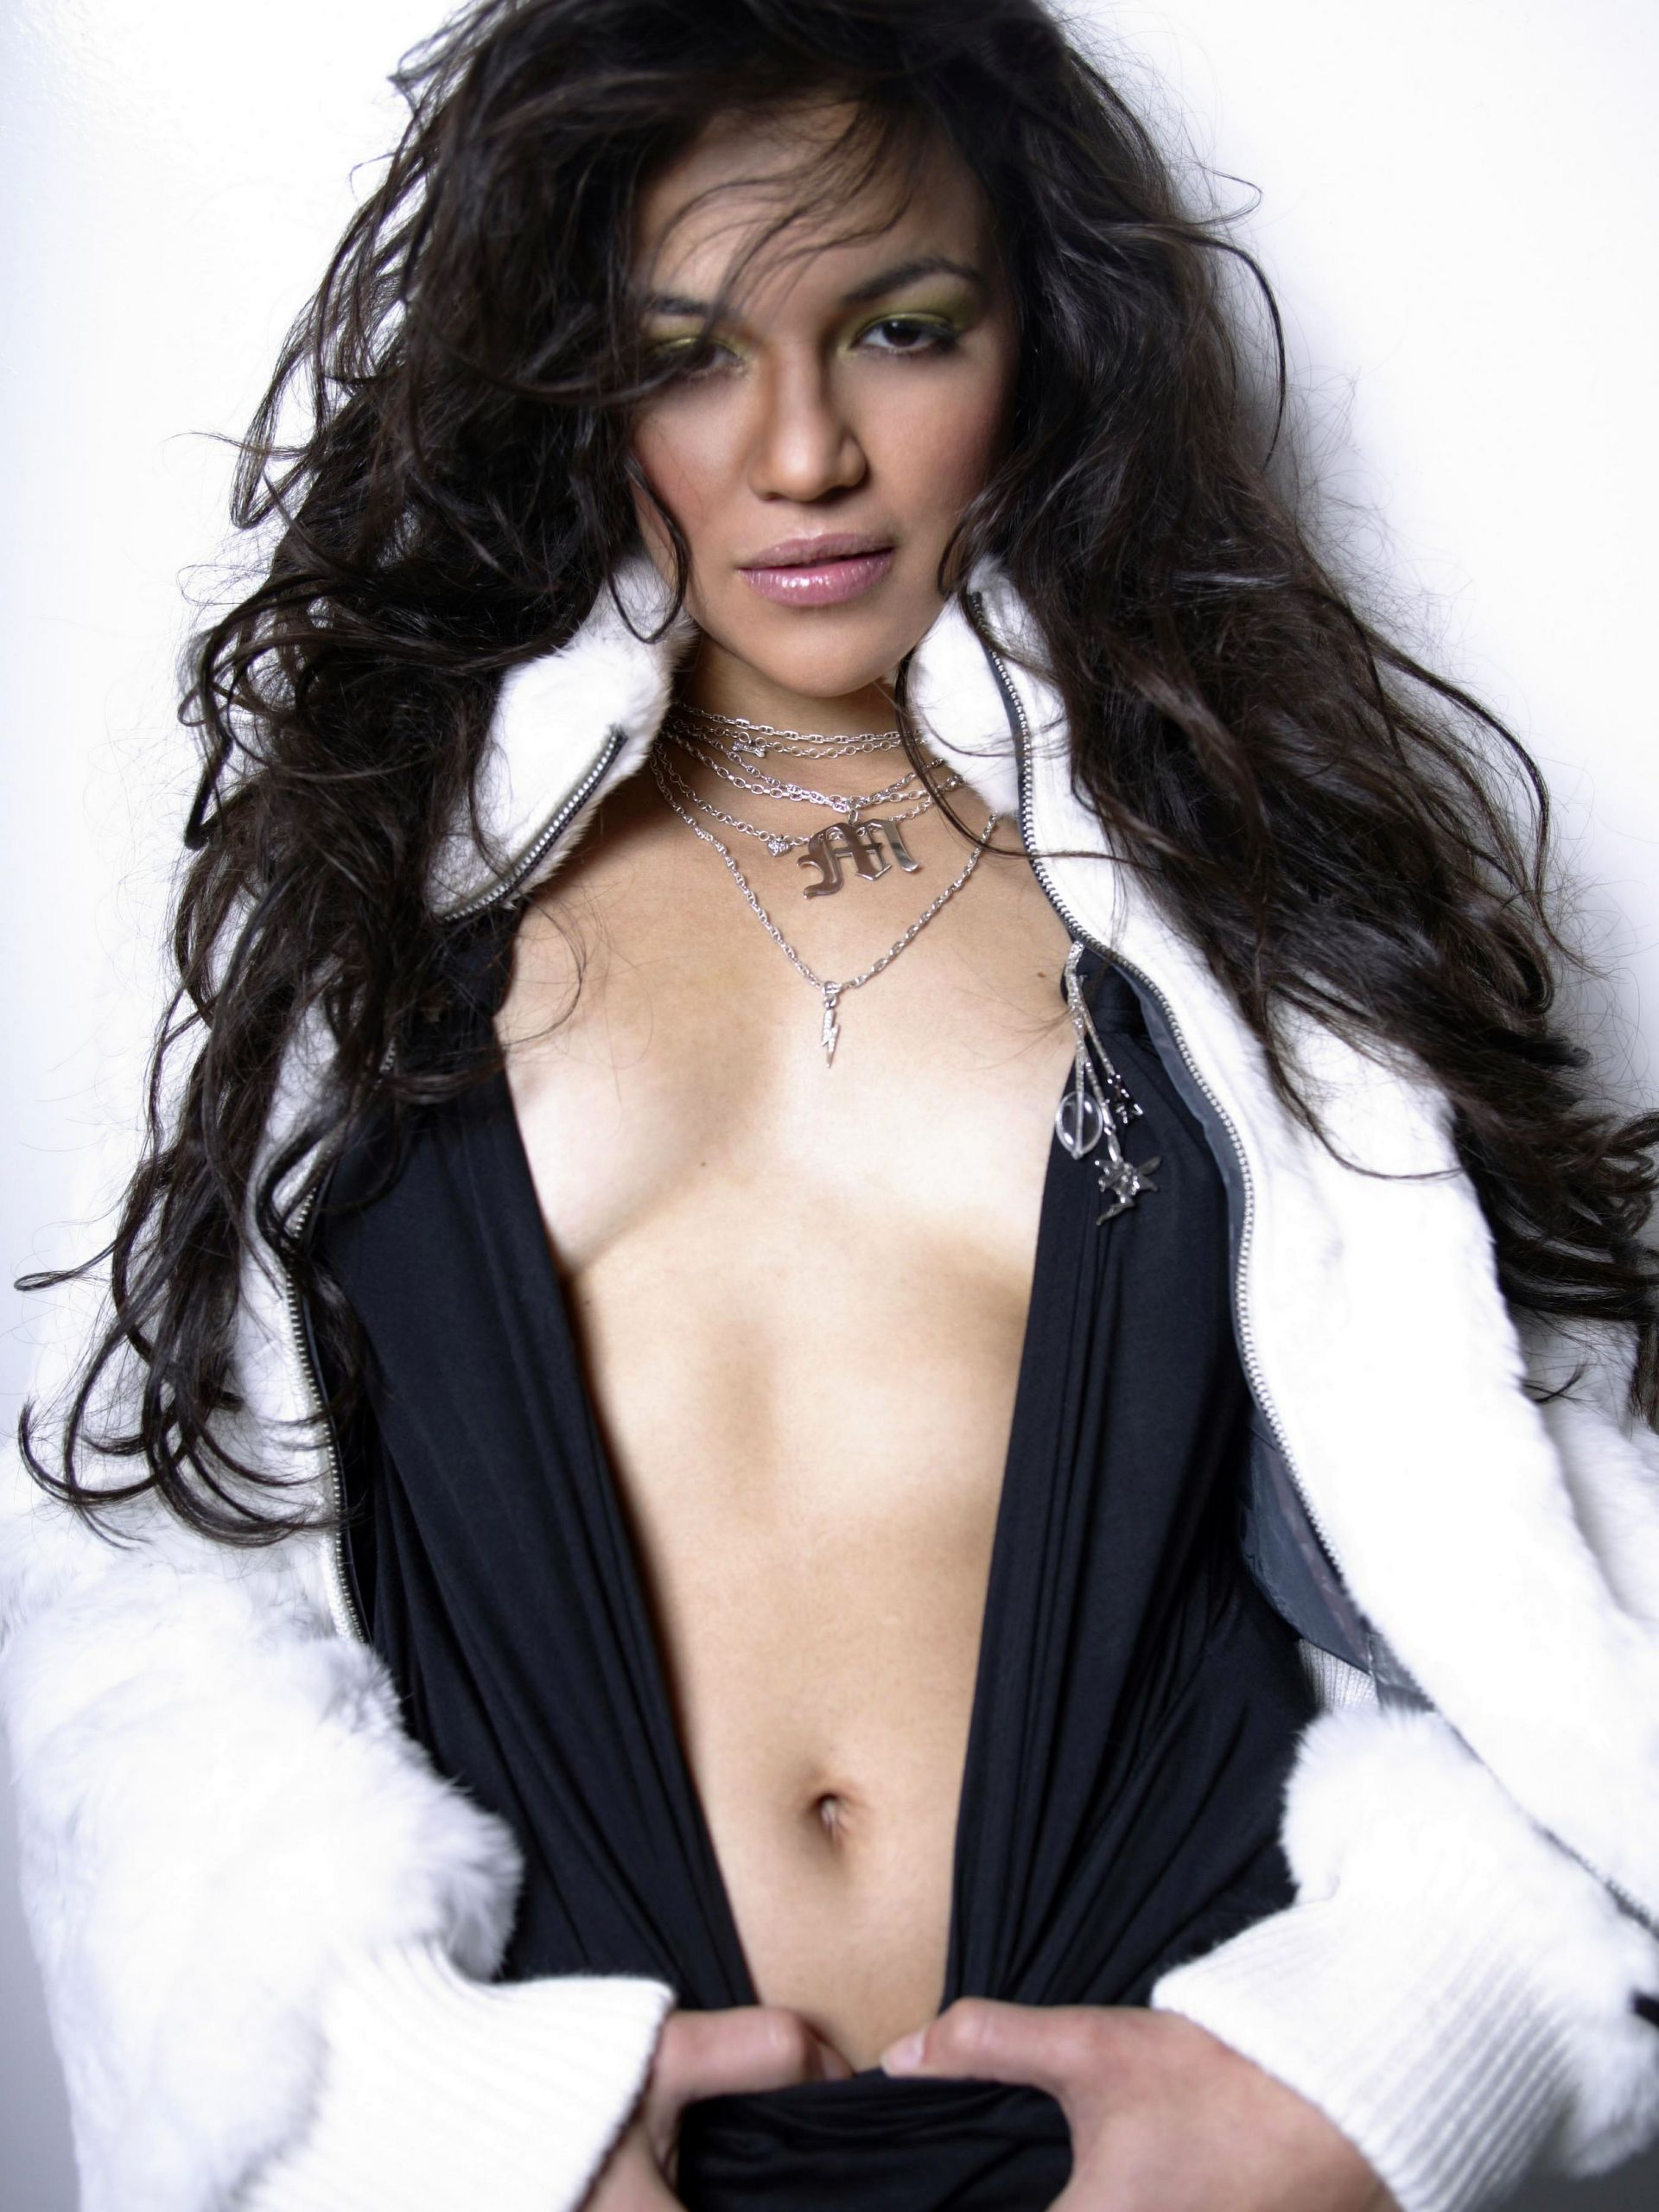 michelle rodriguez hot cleavage